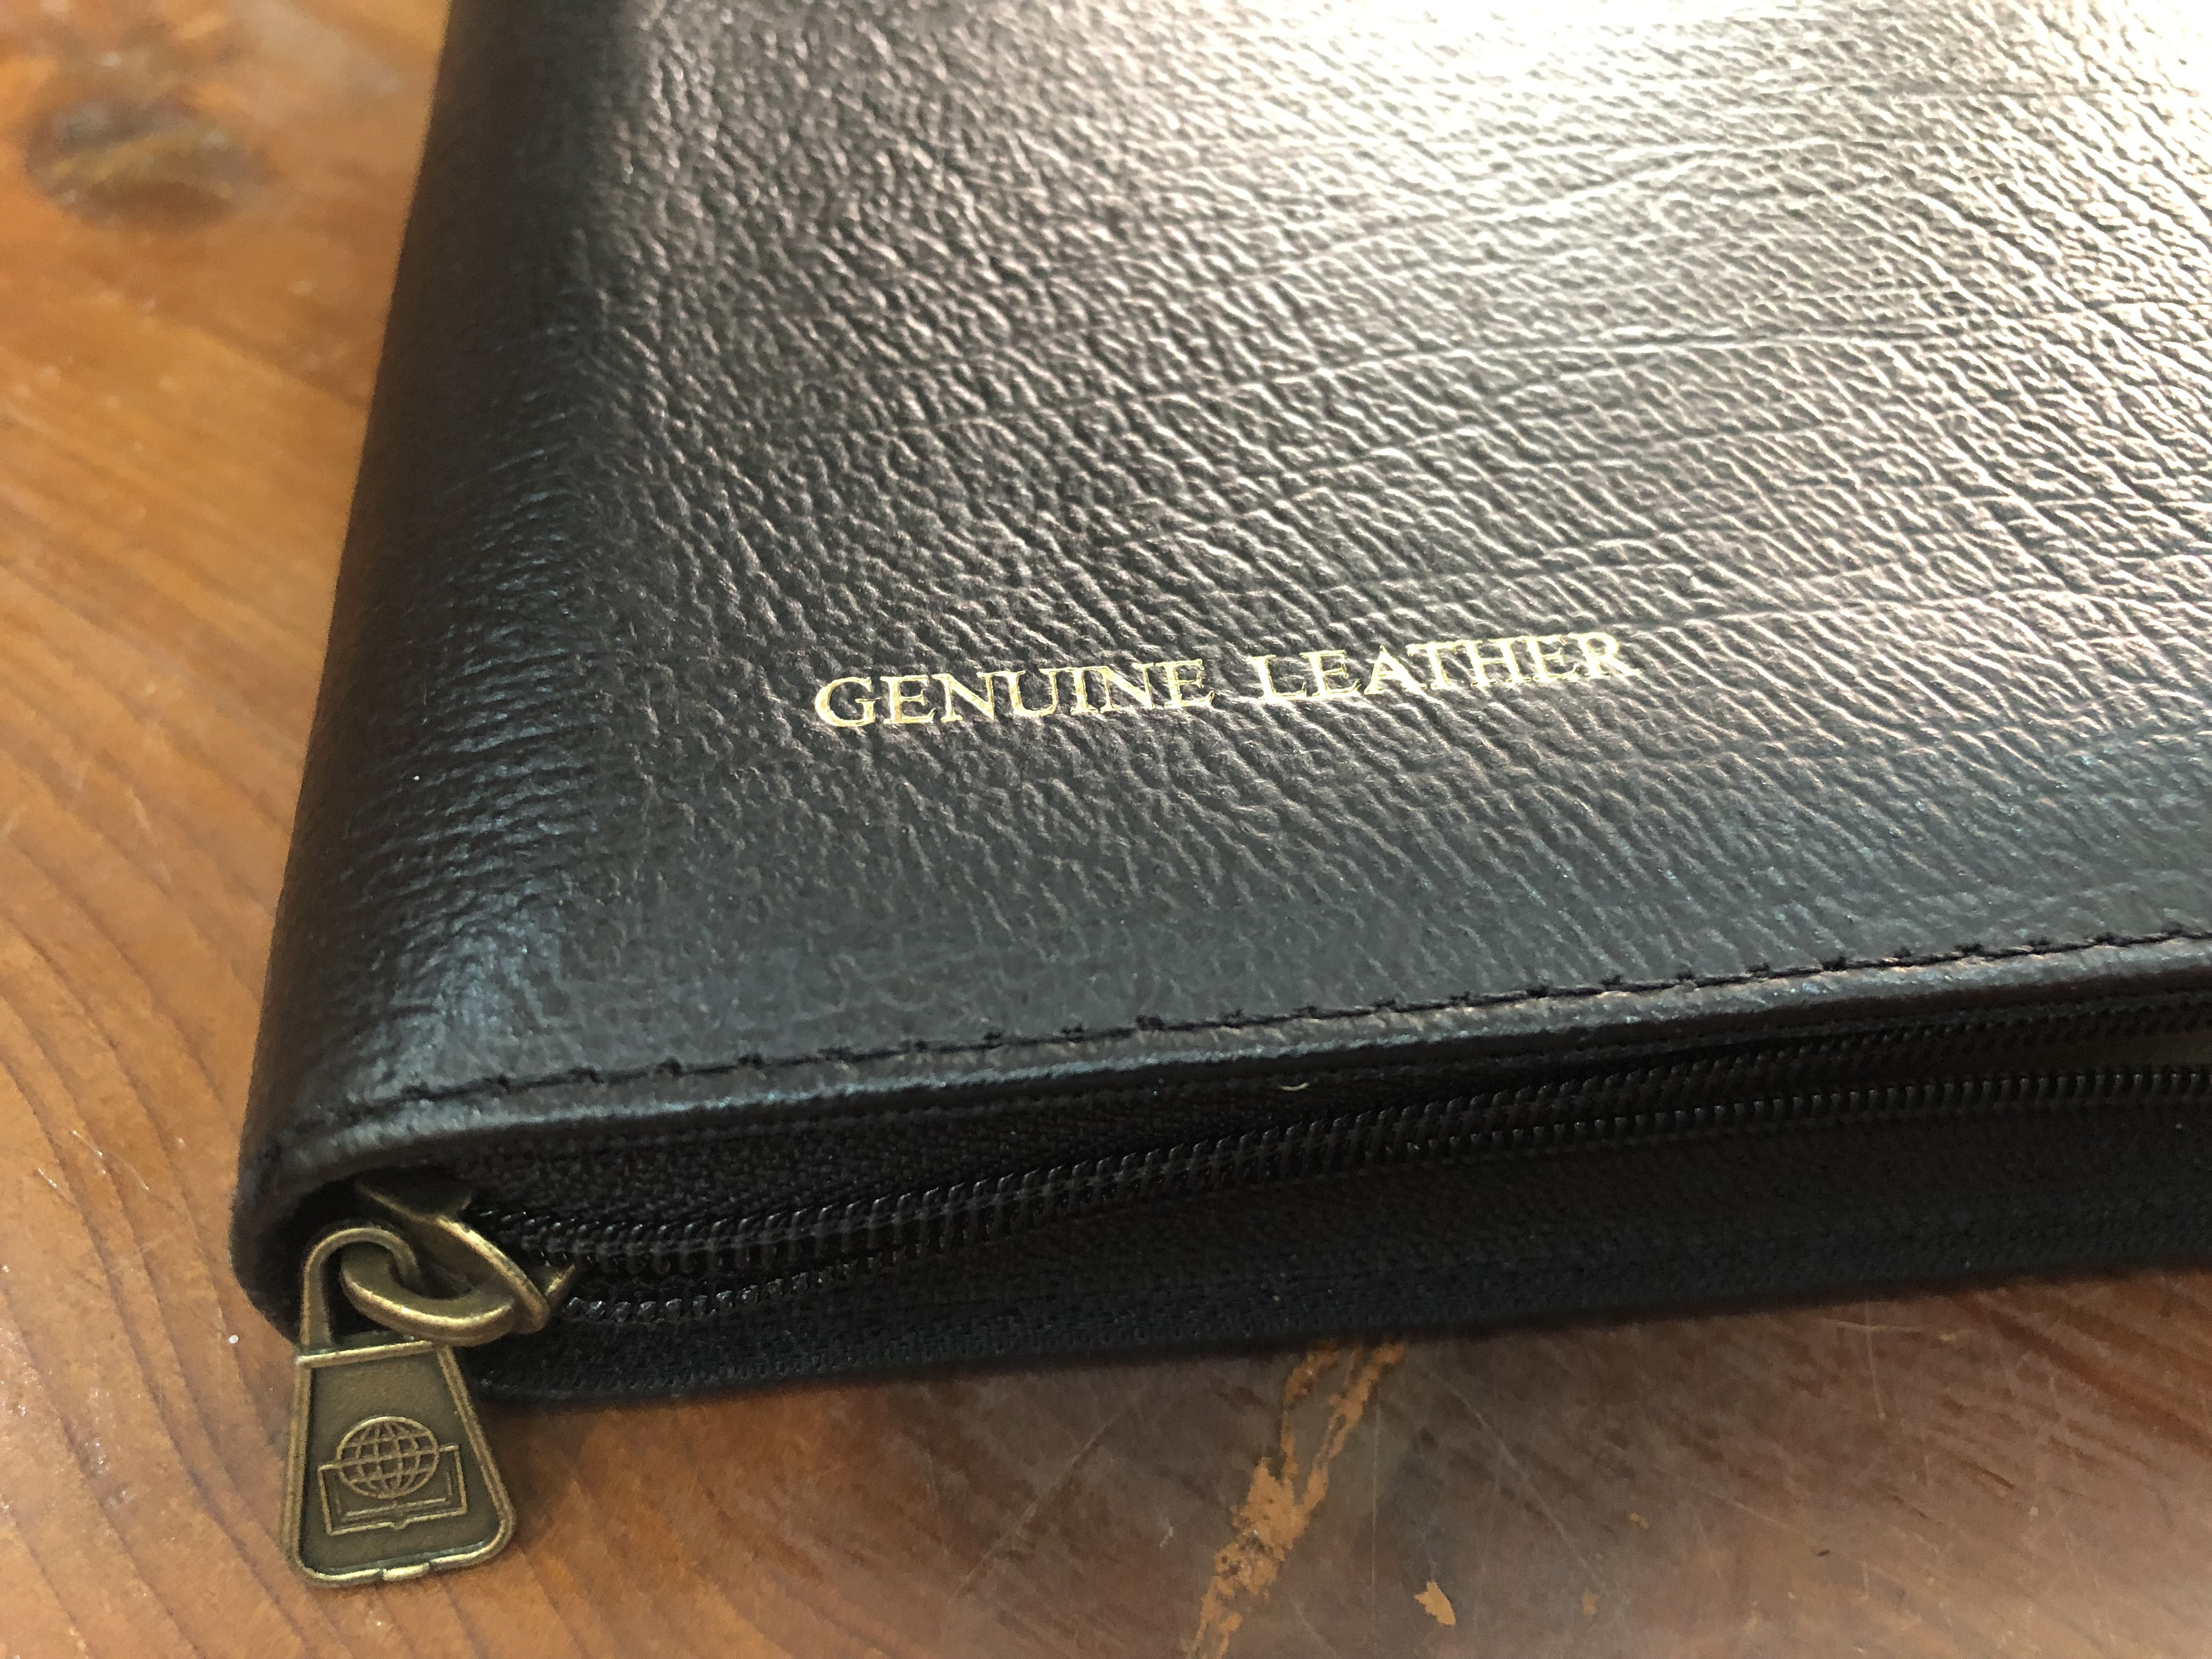 urdu-holy-bible-black-leather-bound-with-zipper-revised-version-pakistan-bible-society-2017-genuine-leather-golden-page-edges-thumb-index-93p-series-4-.jpg